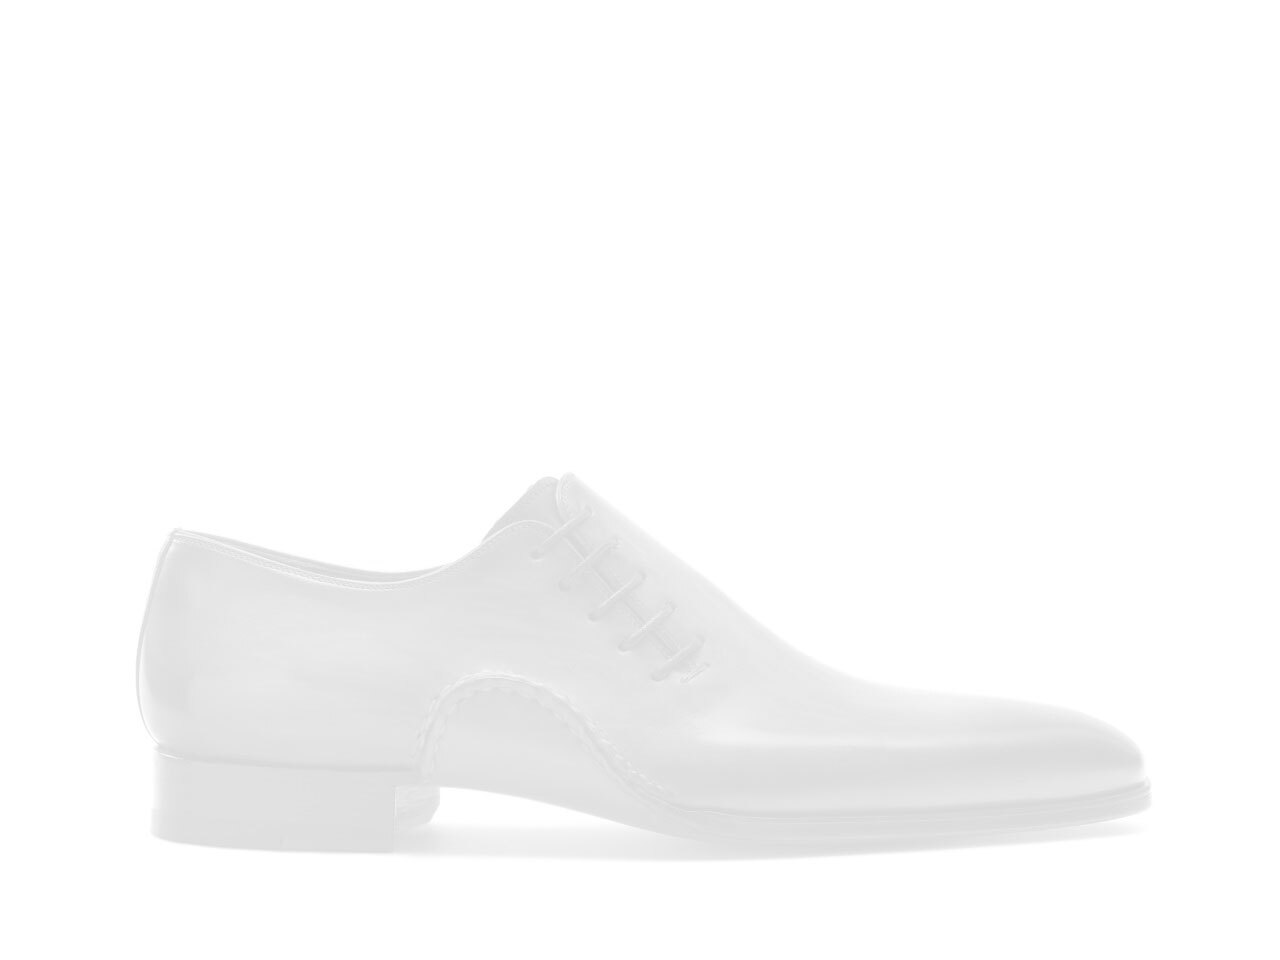 Side view of the Magnanni Reina Tinto Men's Sneakers